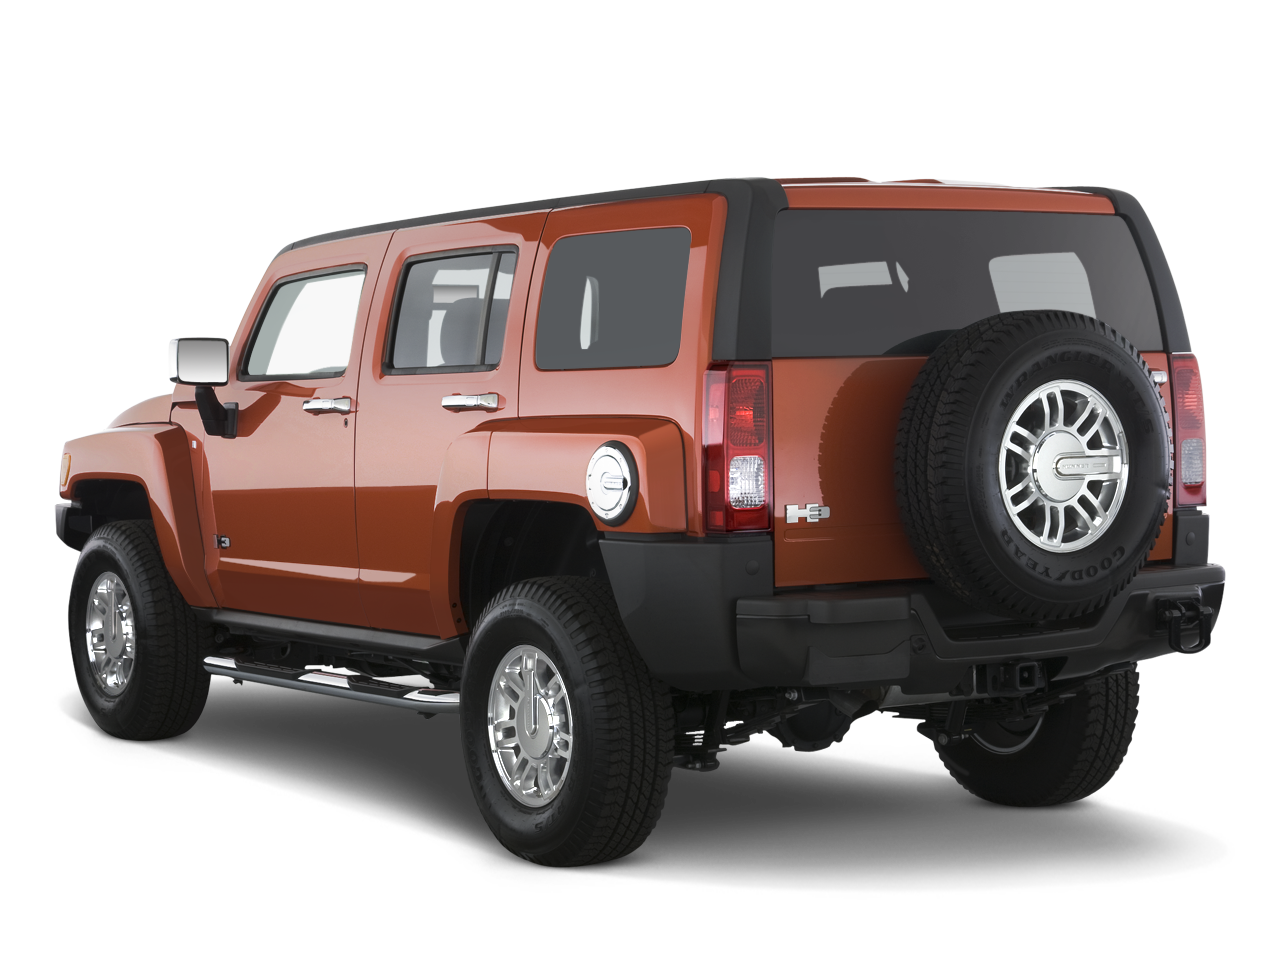 H3 Parts Diagram Wiring Will Be A Thing Alpha Hummer 2008 New And Future Car Reviews Chevy